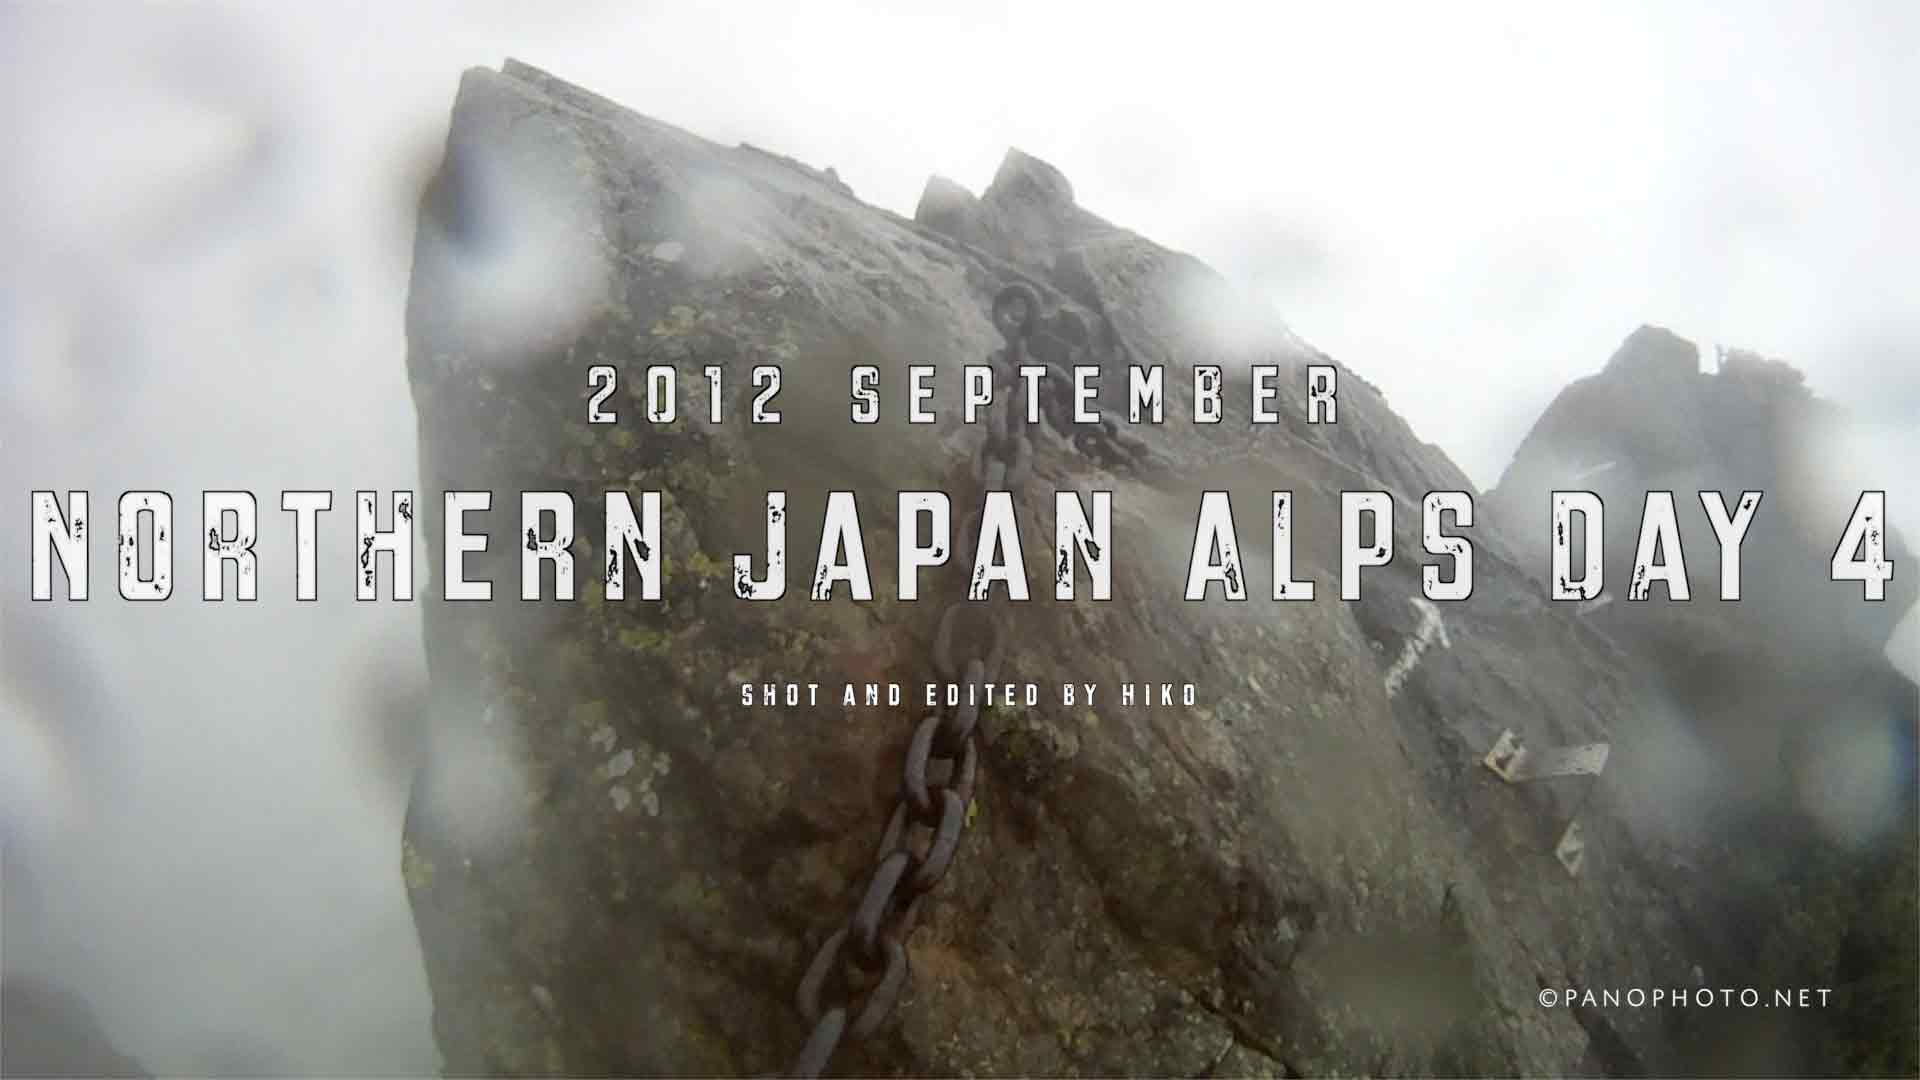 Northern-Japan-Alps-Day-4-Featured-Image